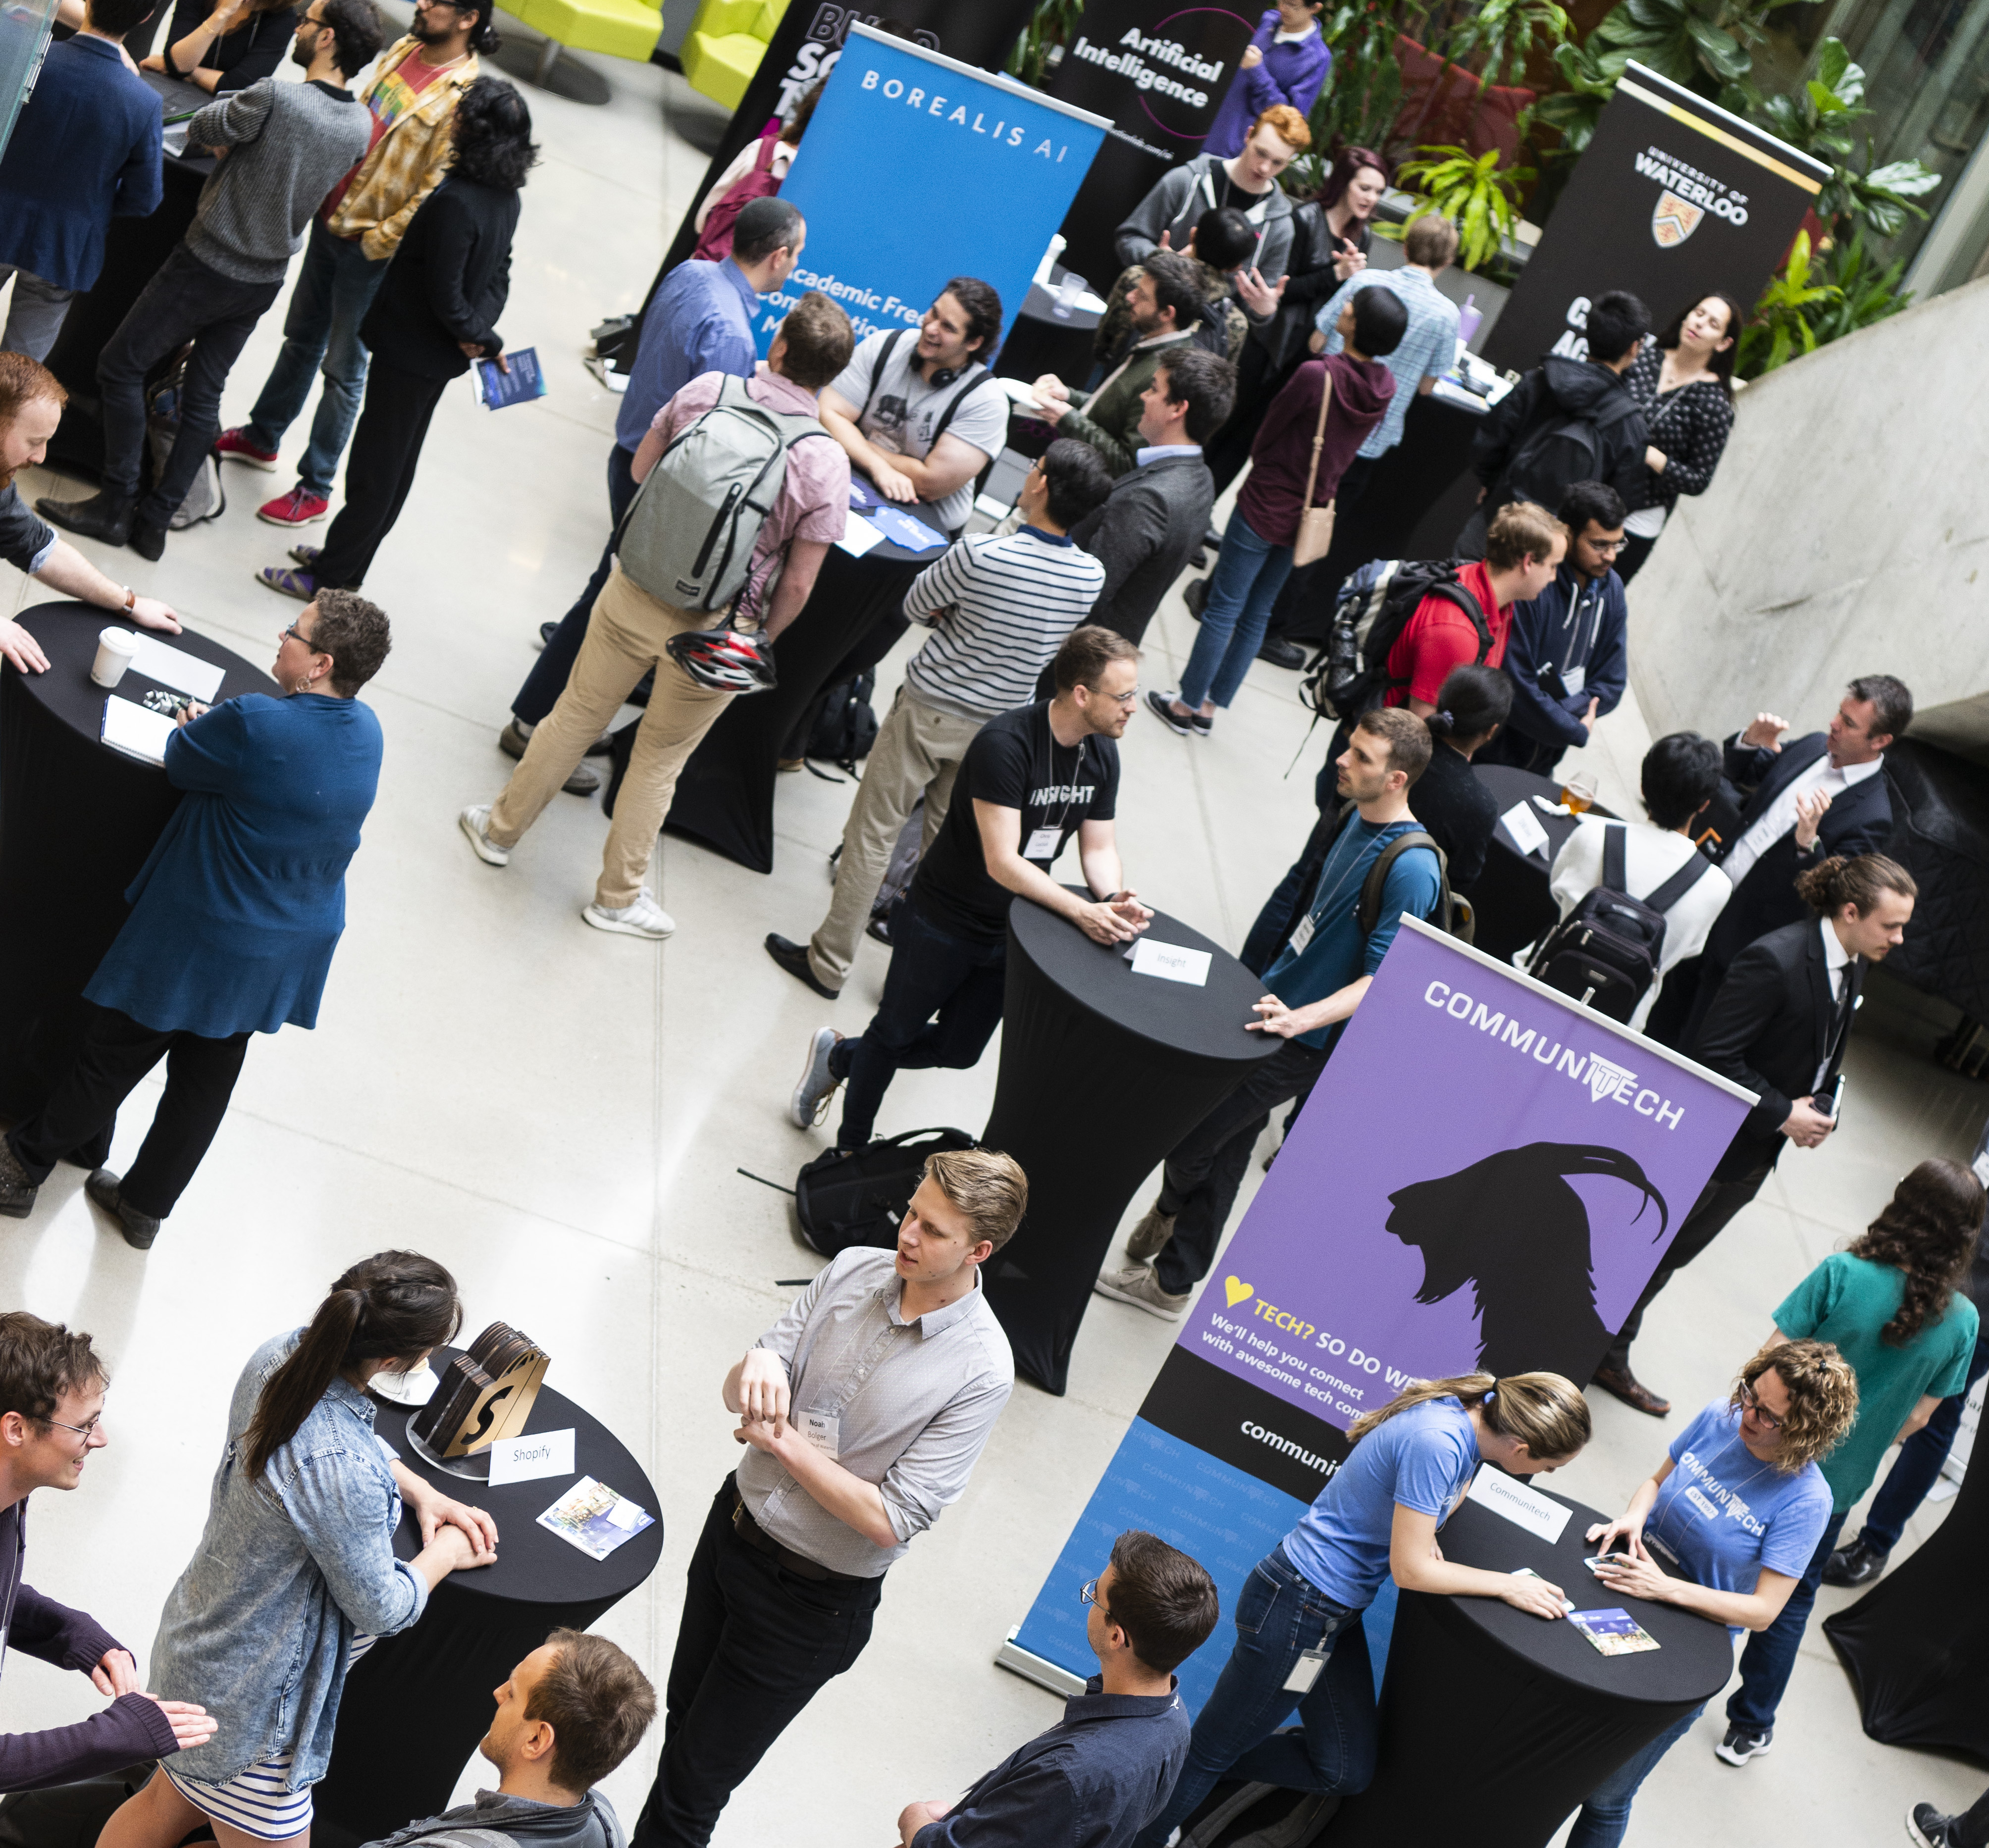 Aerial shot of people at a networking session in an atrium